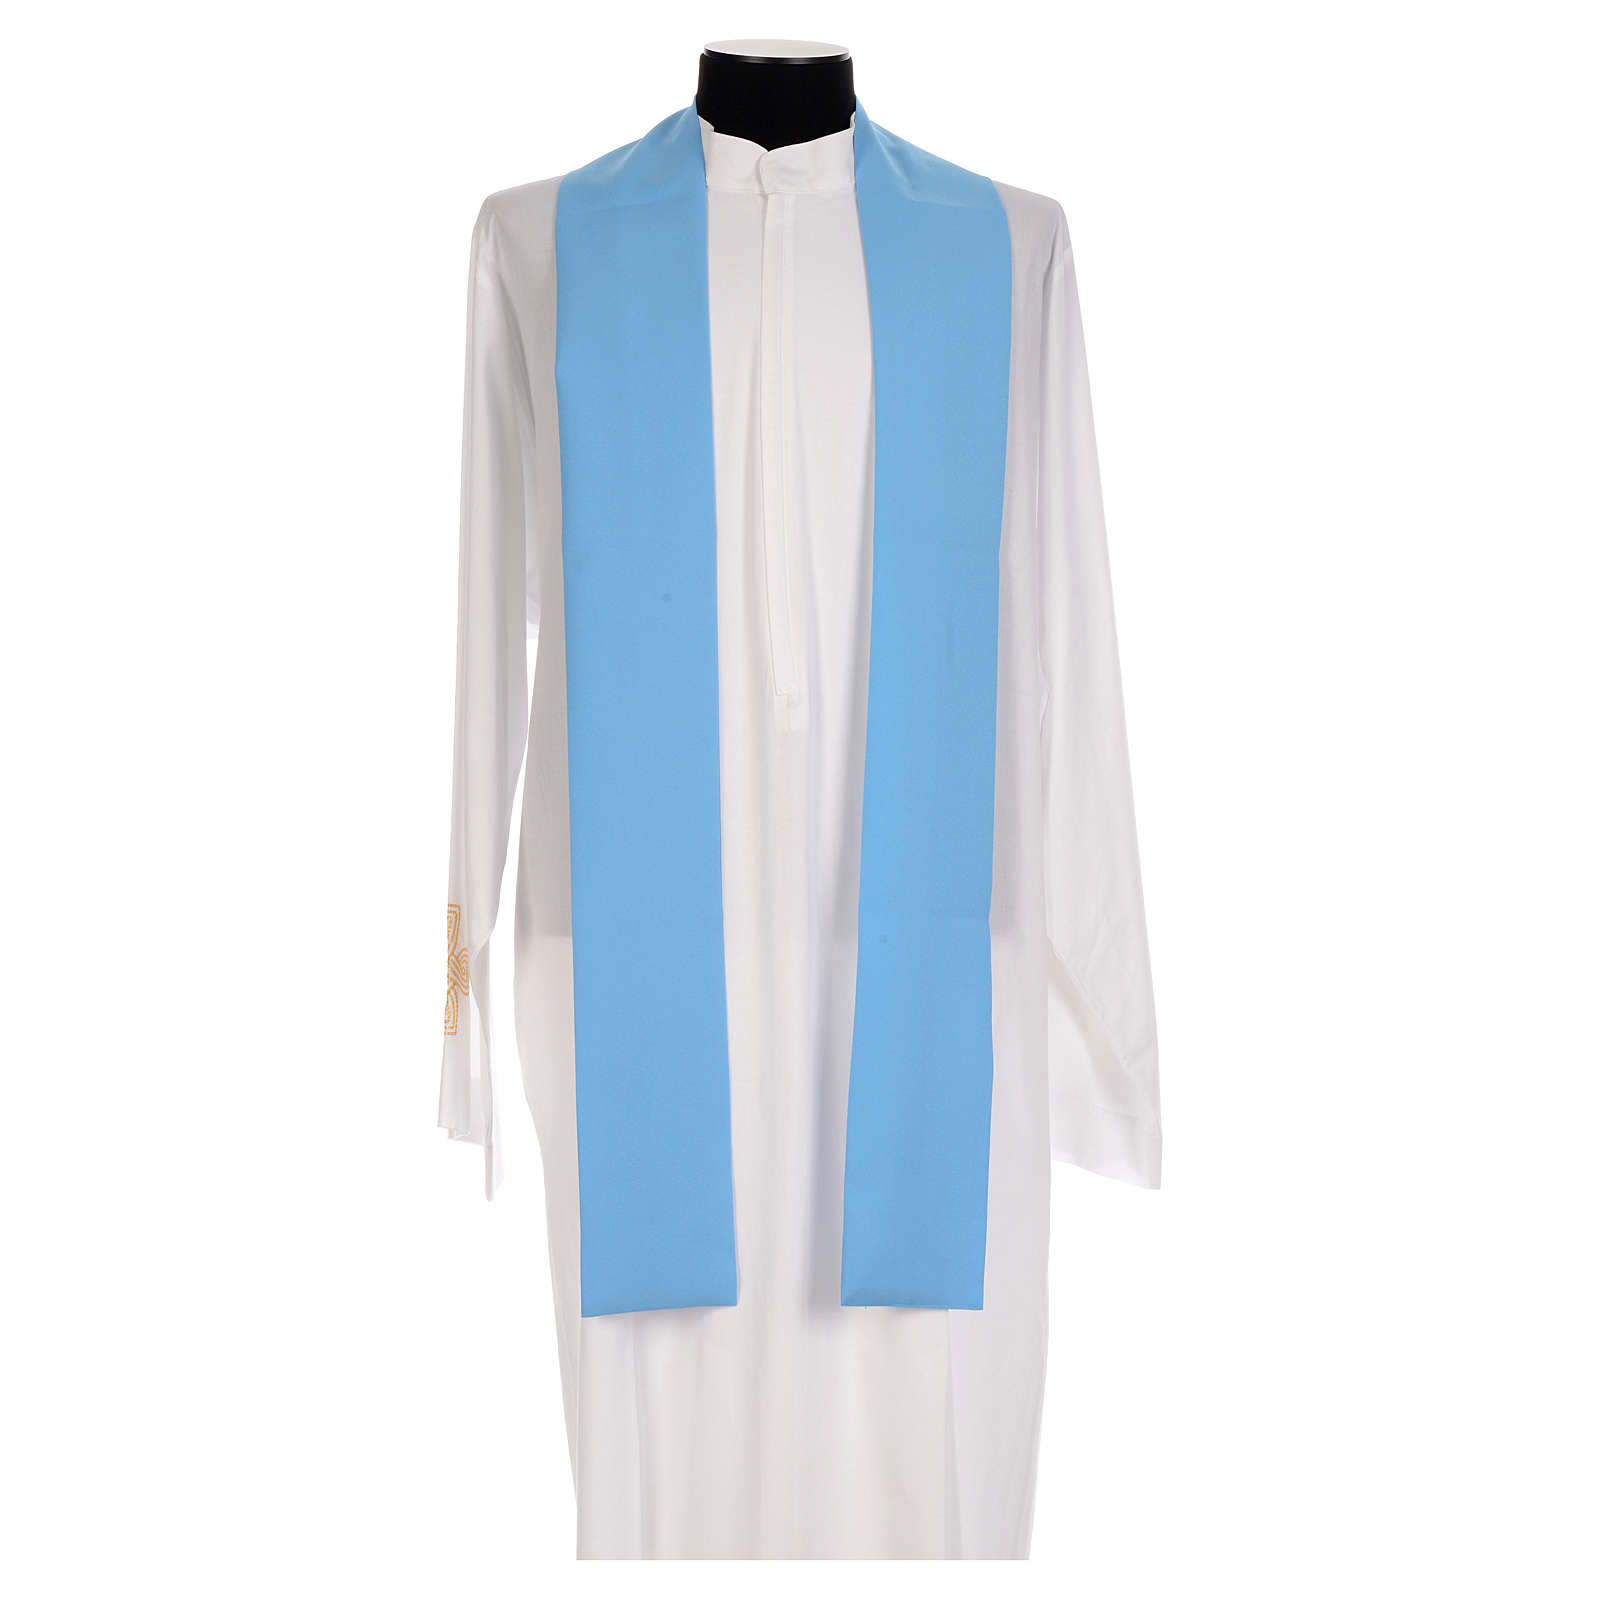 Blue chasuble in shiny polyester with Chi-Rho 4